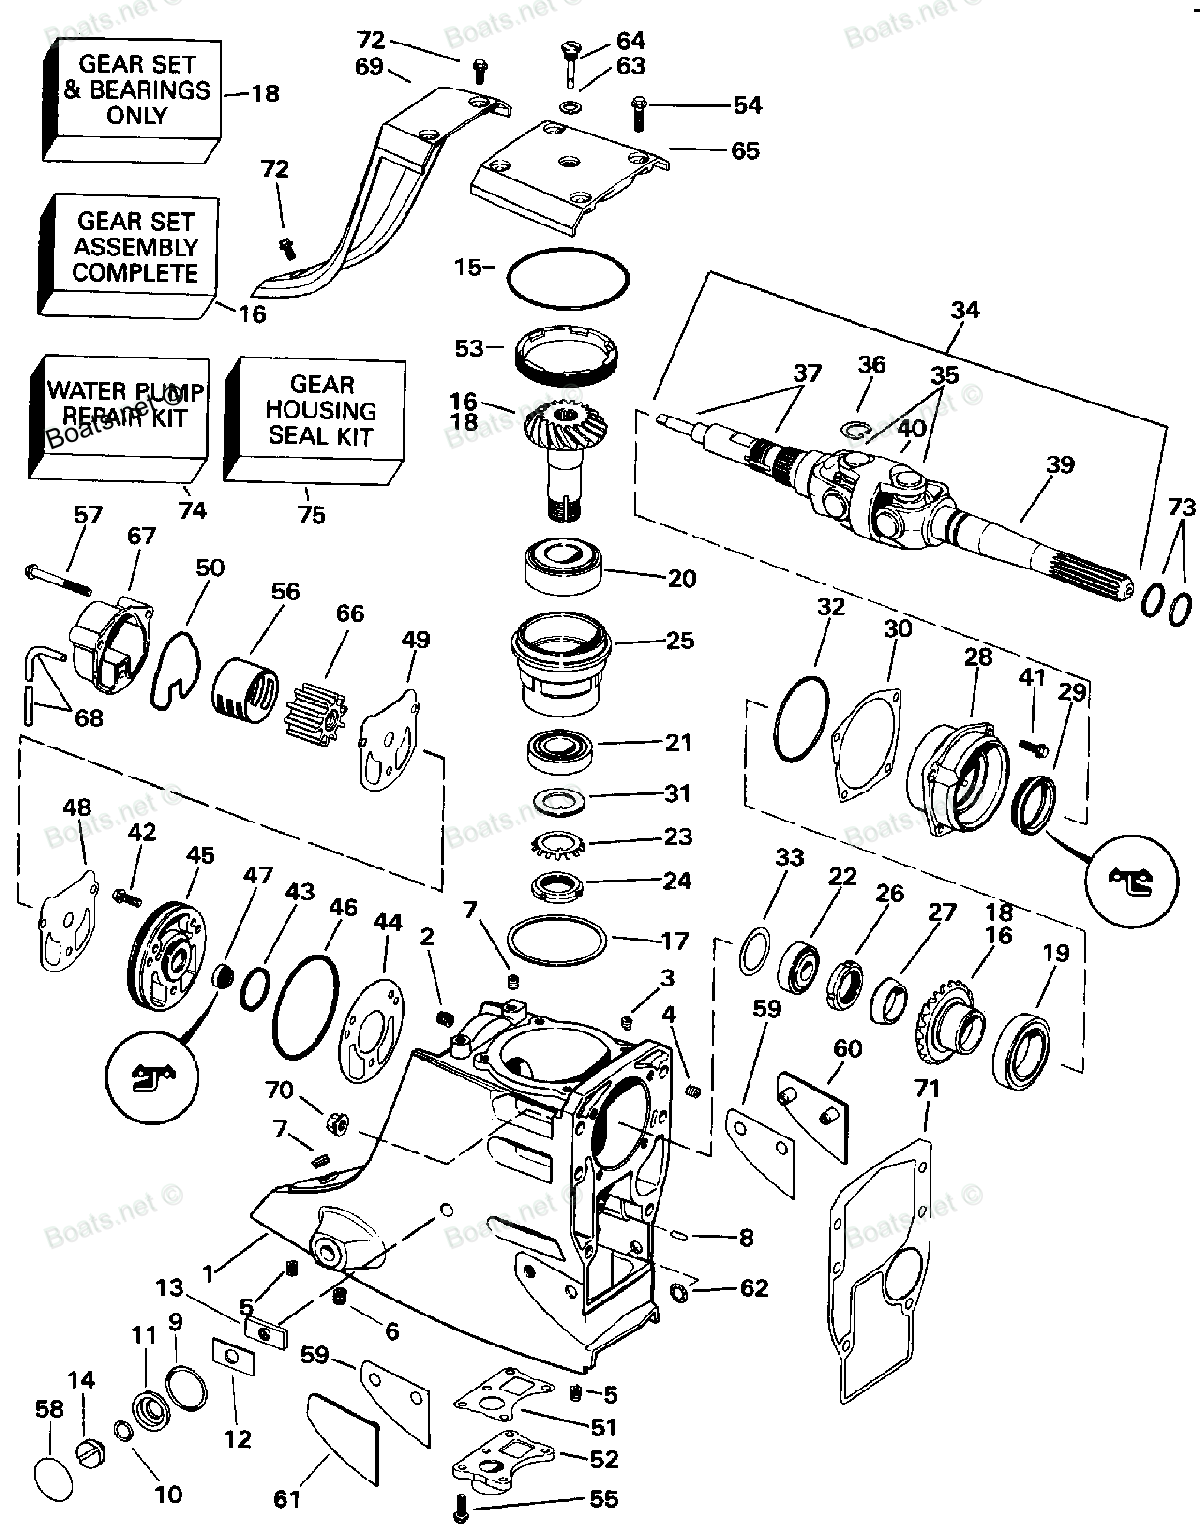 Ford 3 0 Engine Water Flow Diagrams,Engine.Wiring Harness ...  Liter Ford Engine Diagram on